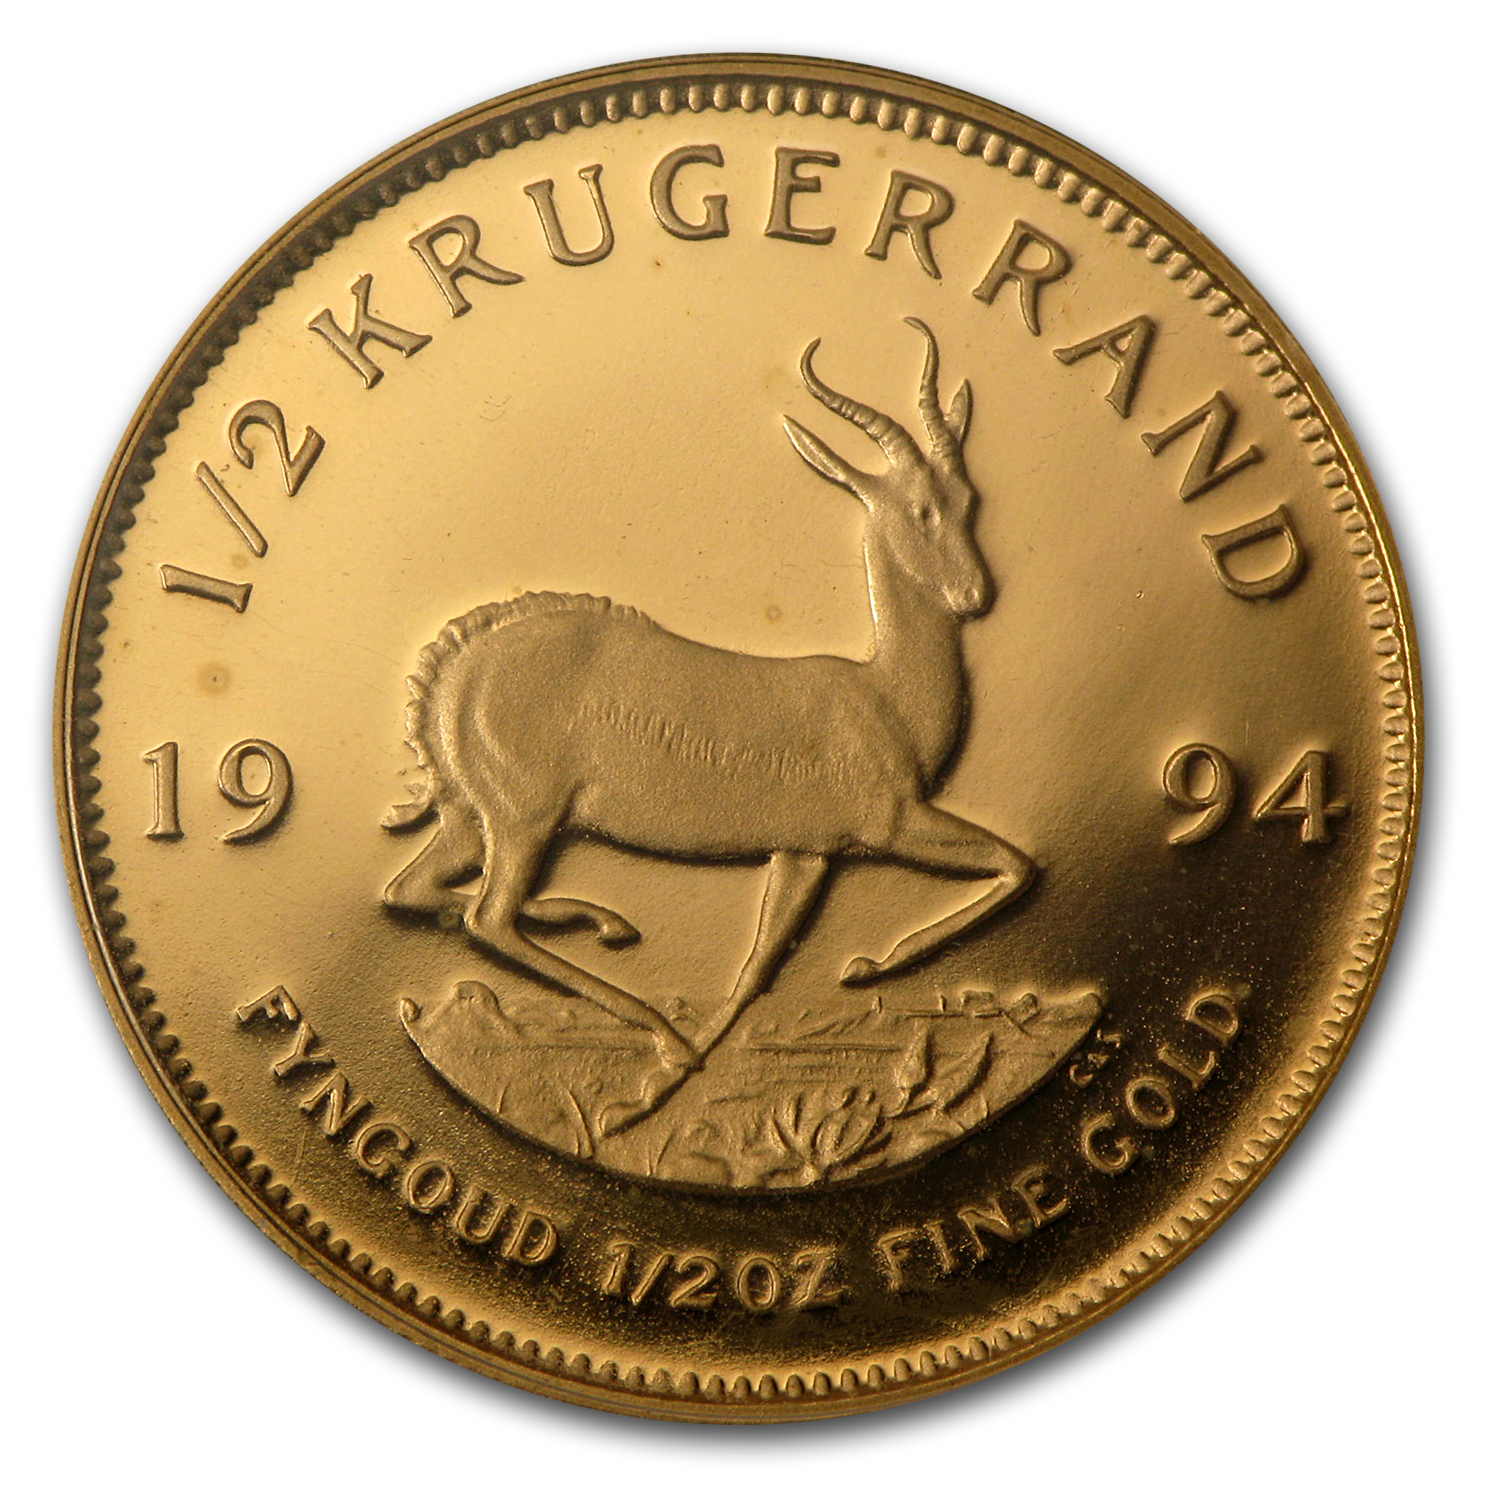 1994 South Africa 1/2 oz Proof Gold Krugerrand